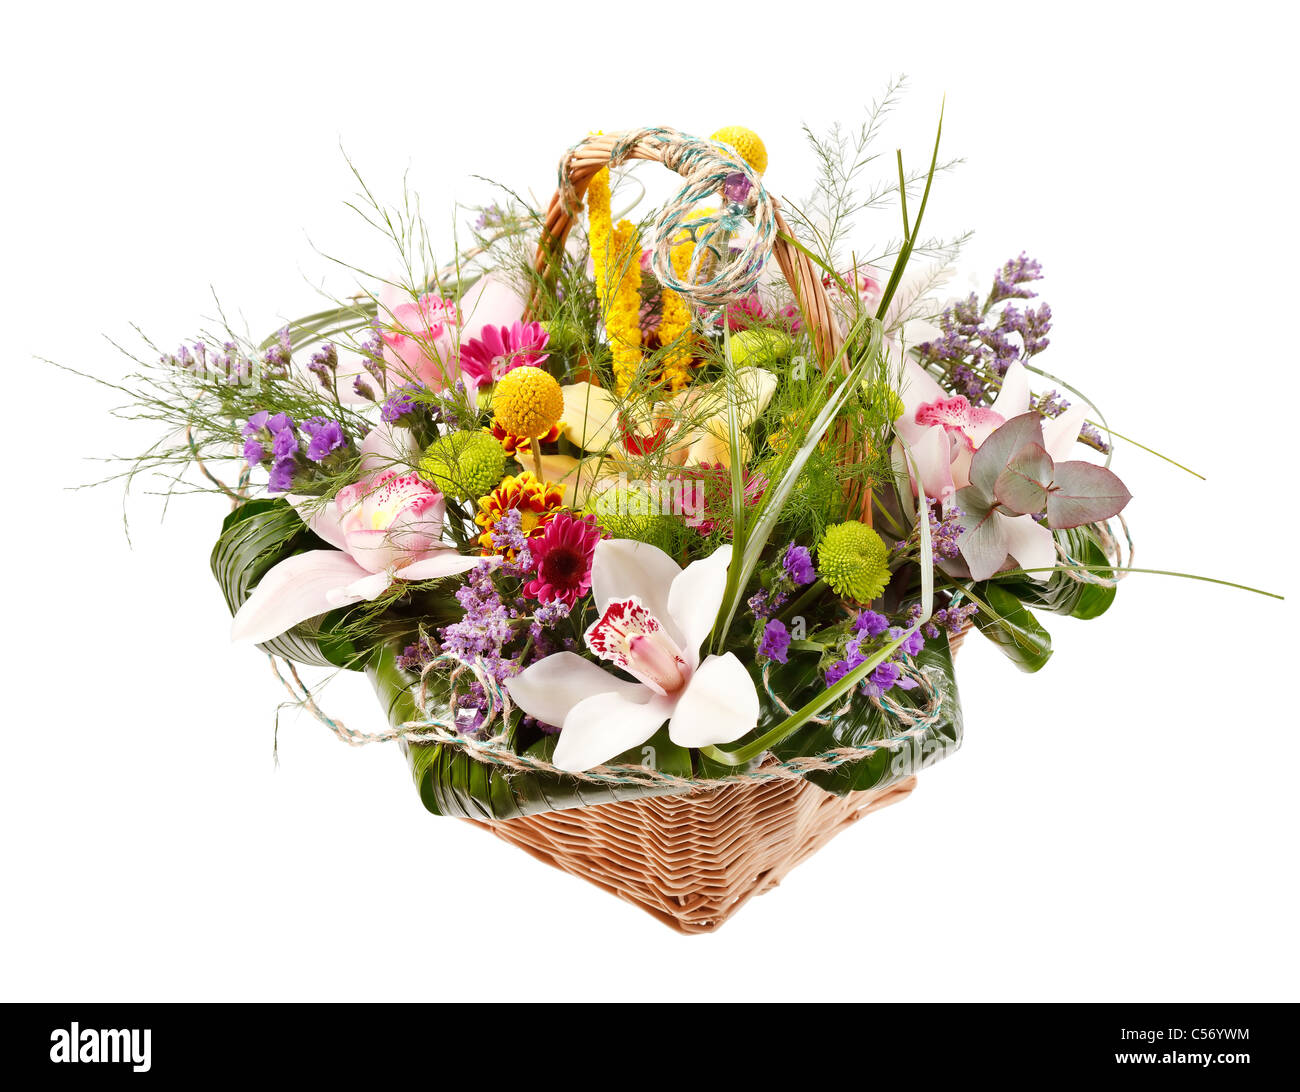 Beautiful flowers in a basket stock photo 37647616 alamy beautiful flowers in a basket izmirmasajfo